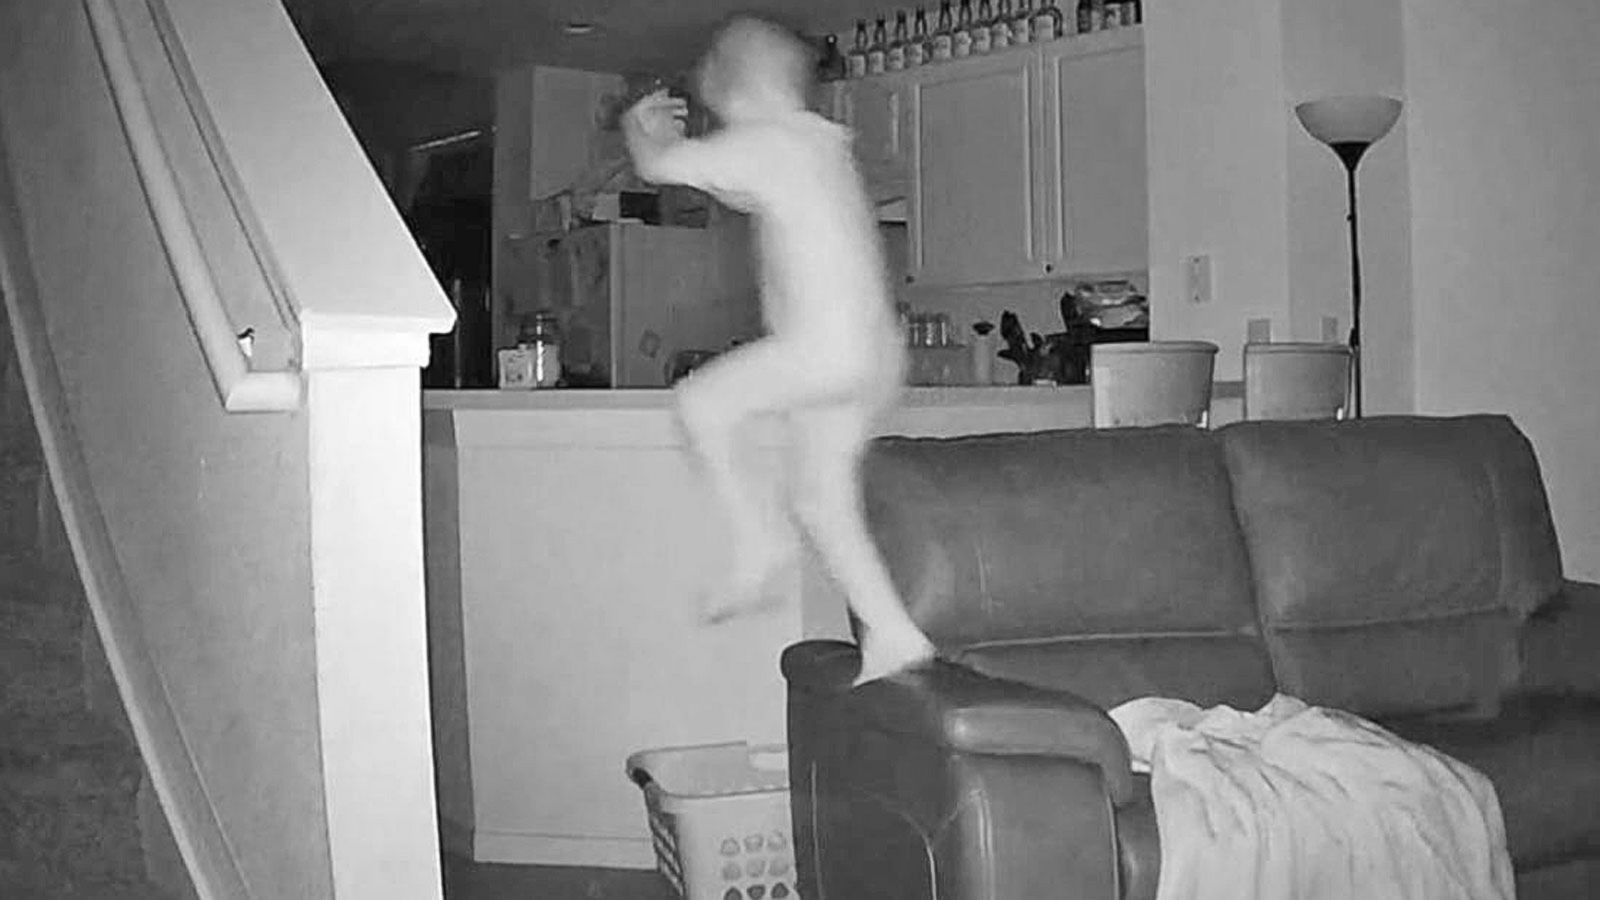 VIDEO: Video Captures Kid's Midnight Fun